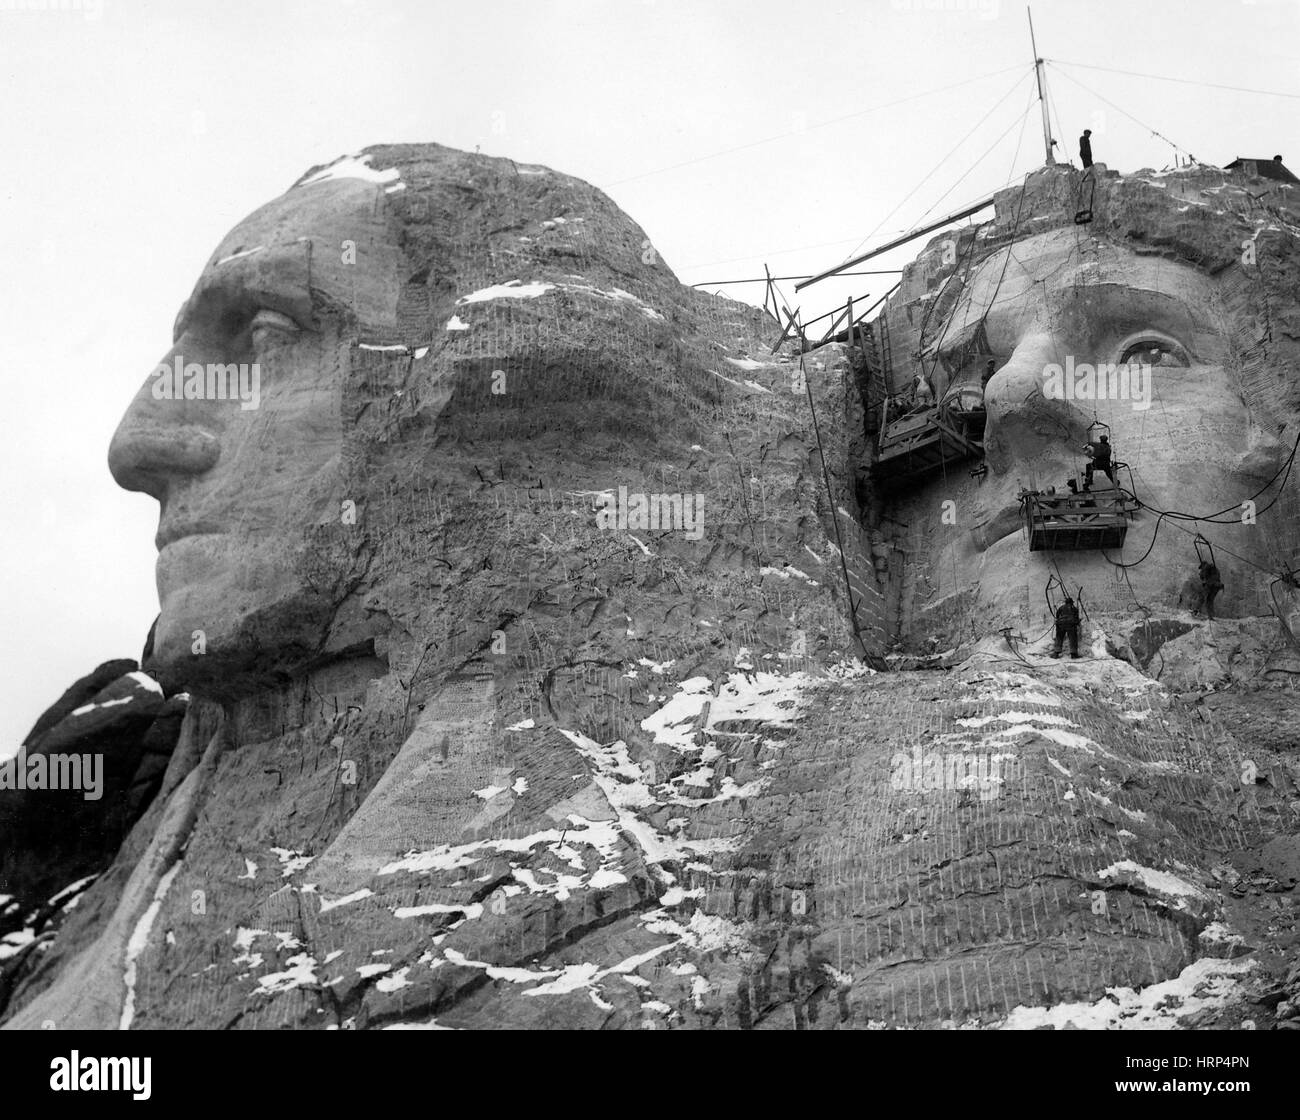 Carving Jefferson's Head, Mount Rushmore, 1930s - Stock Image